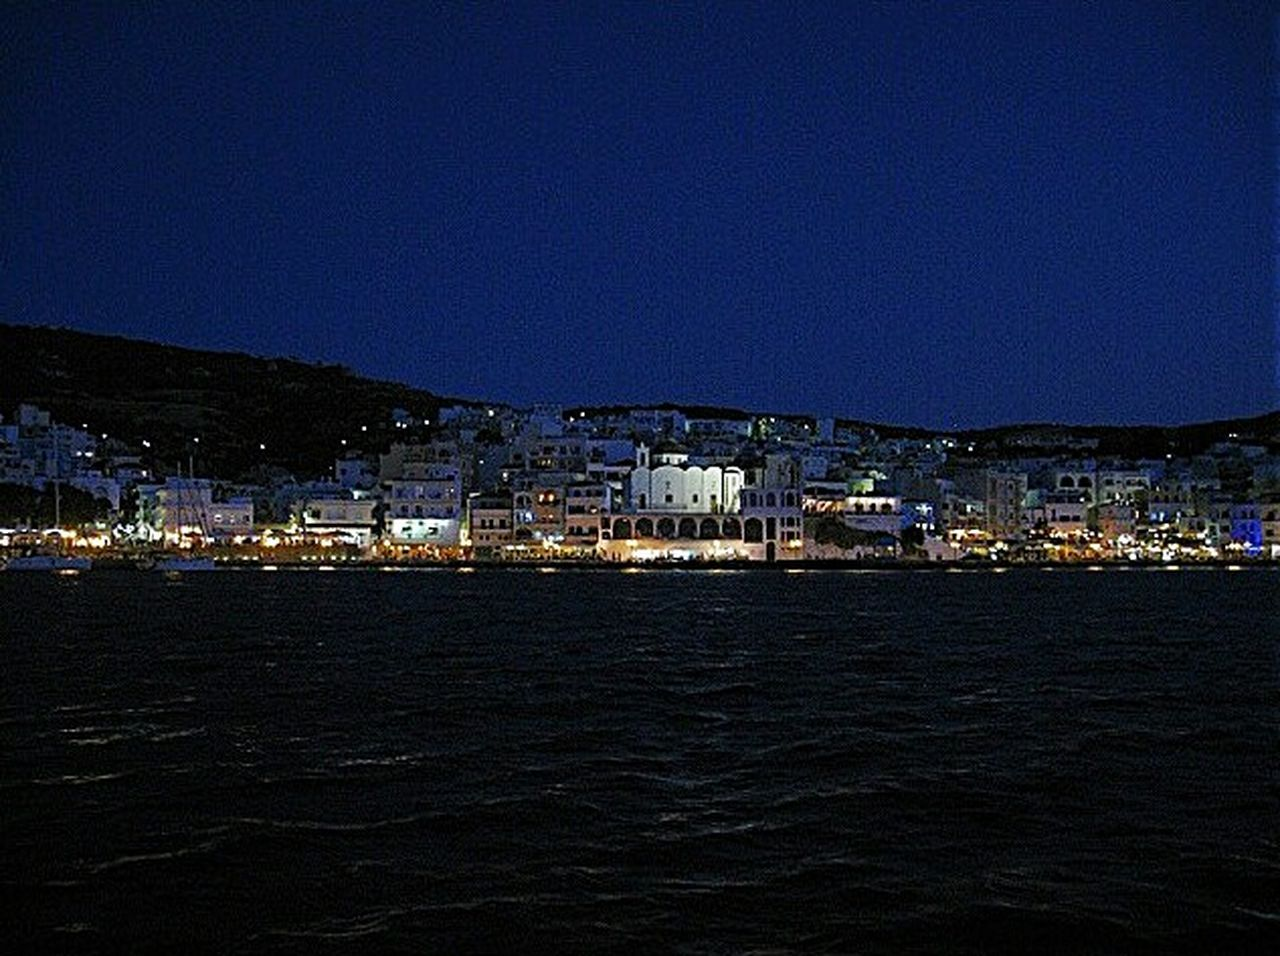 architecture, night, building exterior, cityscape, city, built structure, no people, outdoors, residential building, sea, water, house, waterfront, sky, town, illuminated, travel destinations, nature, clear sky, sailboat, view into land, mountain, urban skyline, mast, yacht